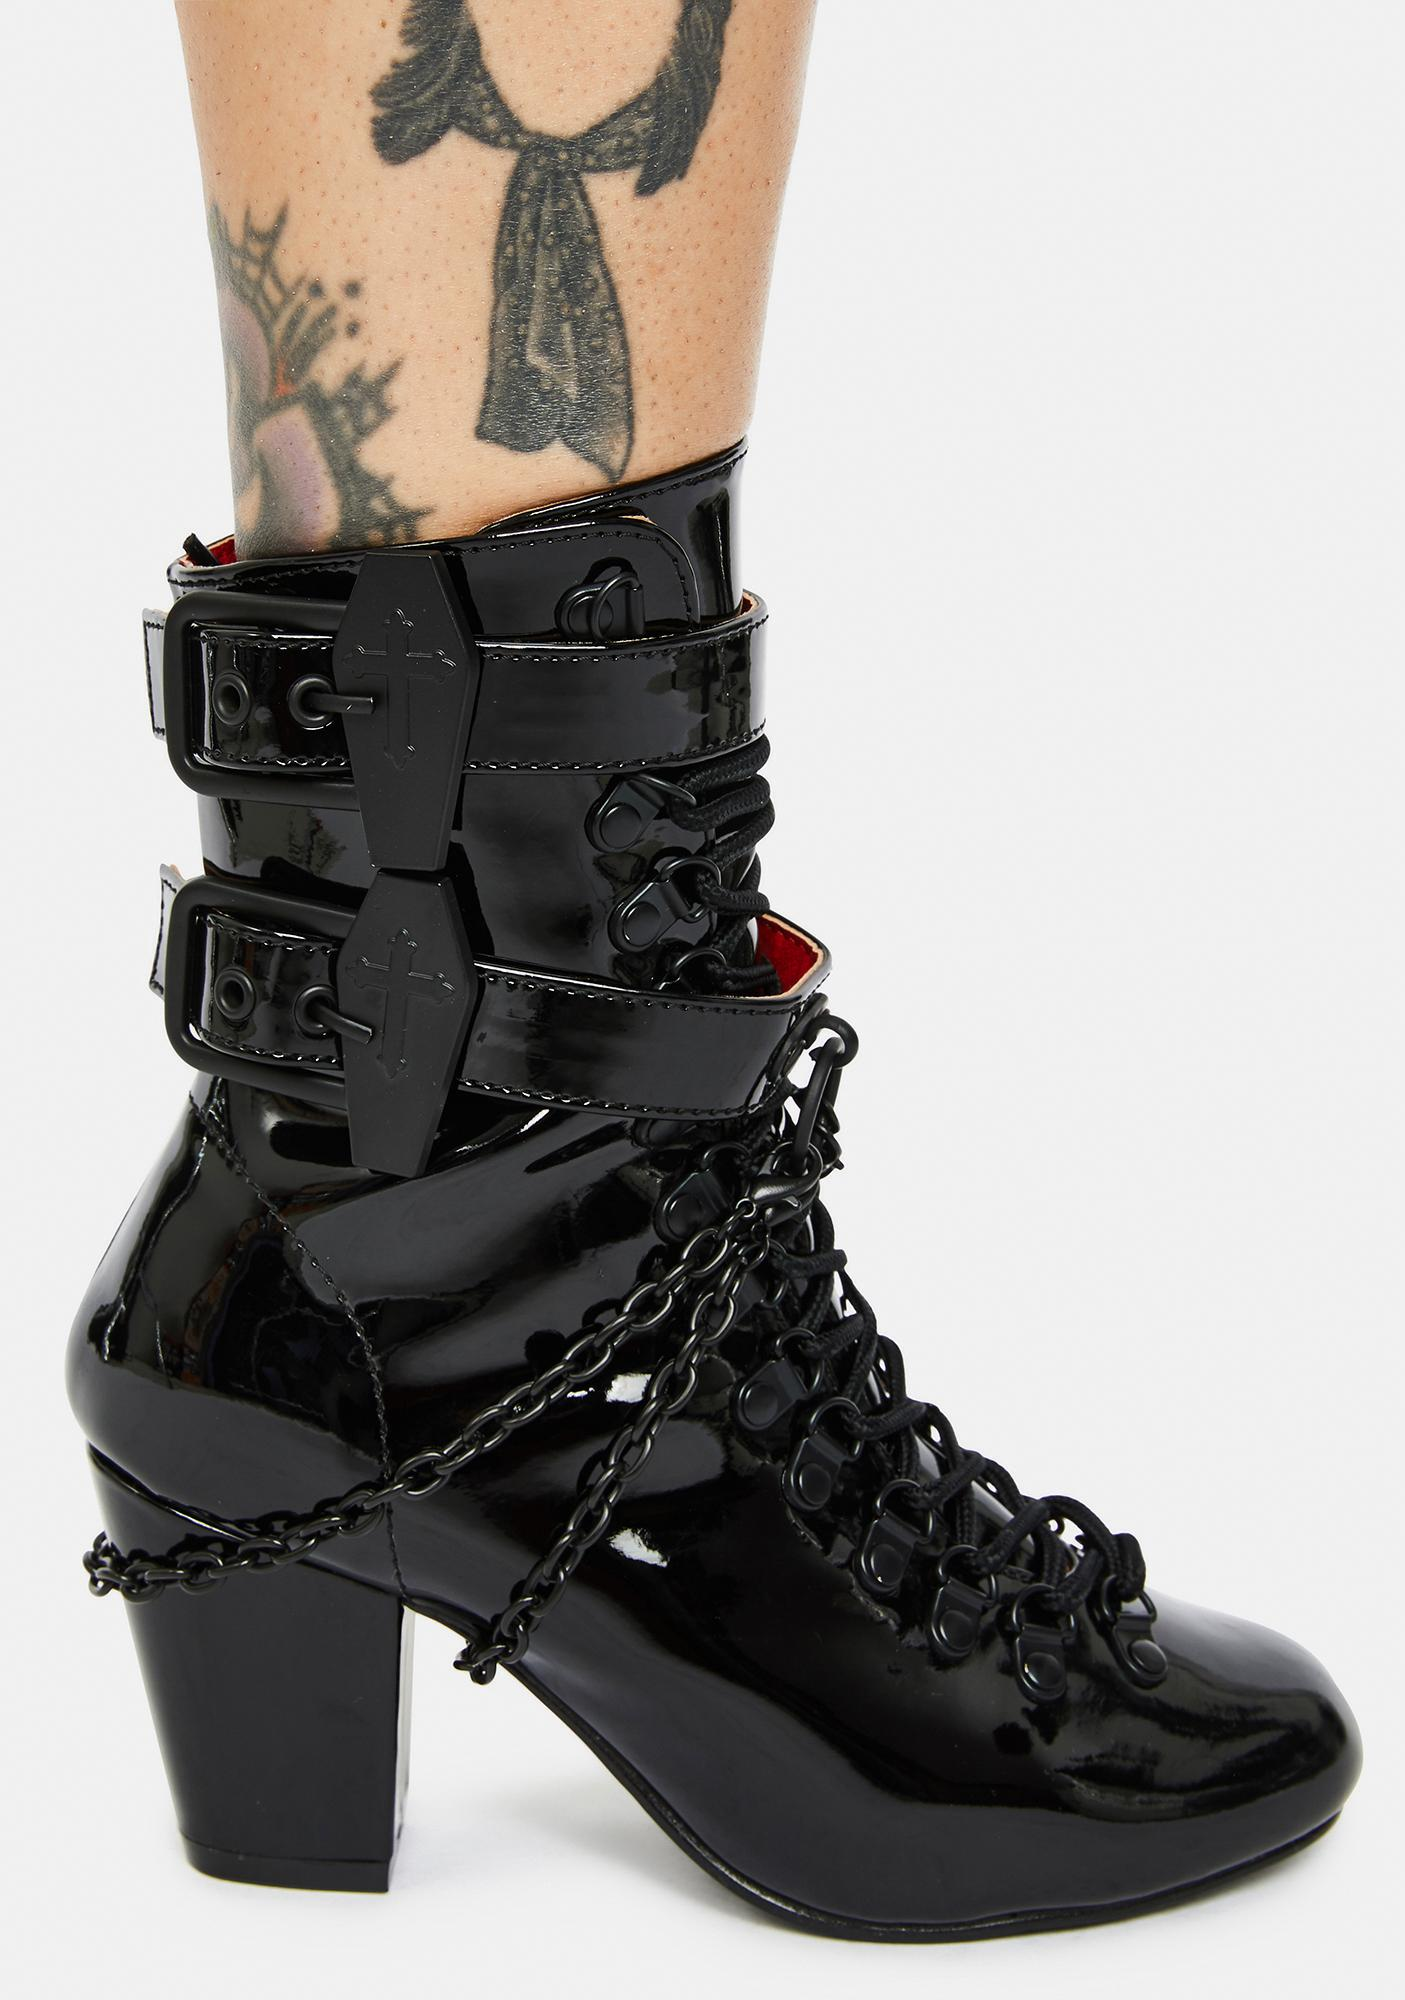 Demonia Patent Lost Tomb Chain Lace Up Boots